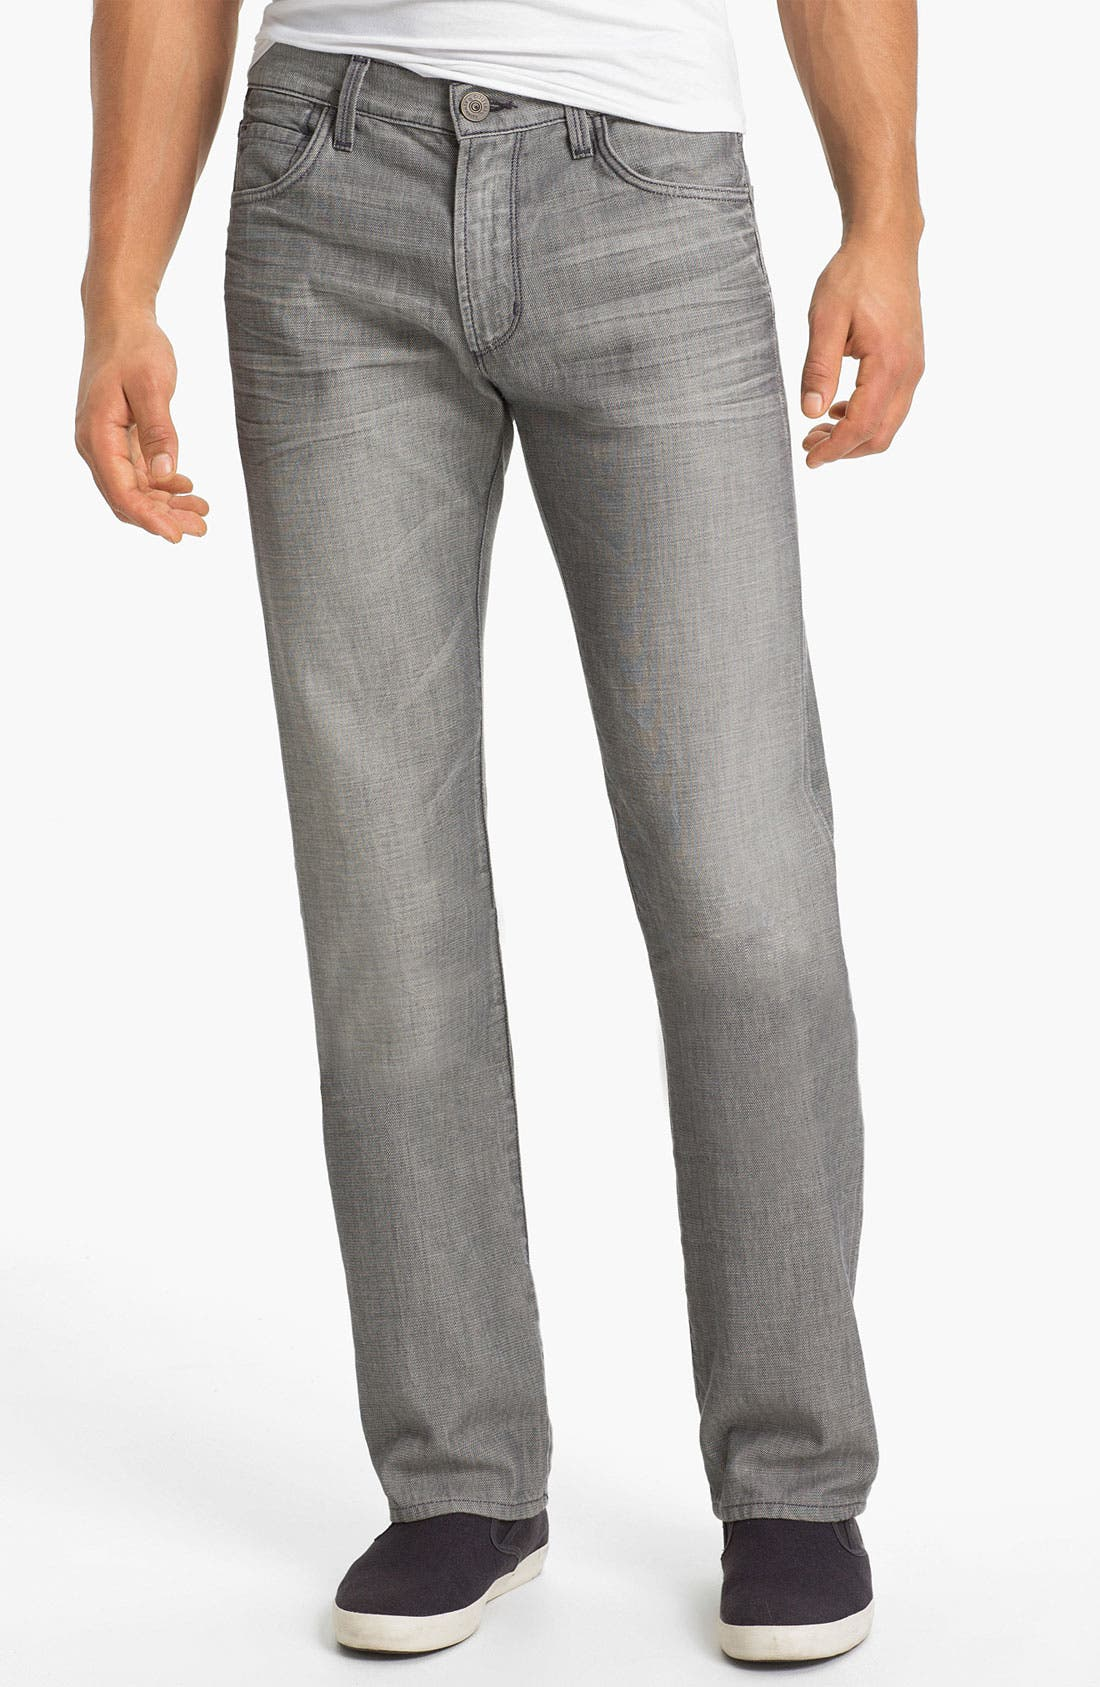 Alternate Image 1 Selected - Citizens of Humanity 'Sid' Straight Leg Jeans (Akis)